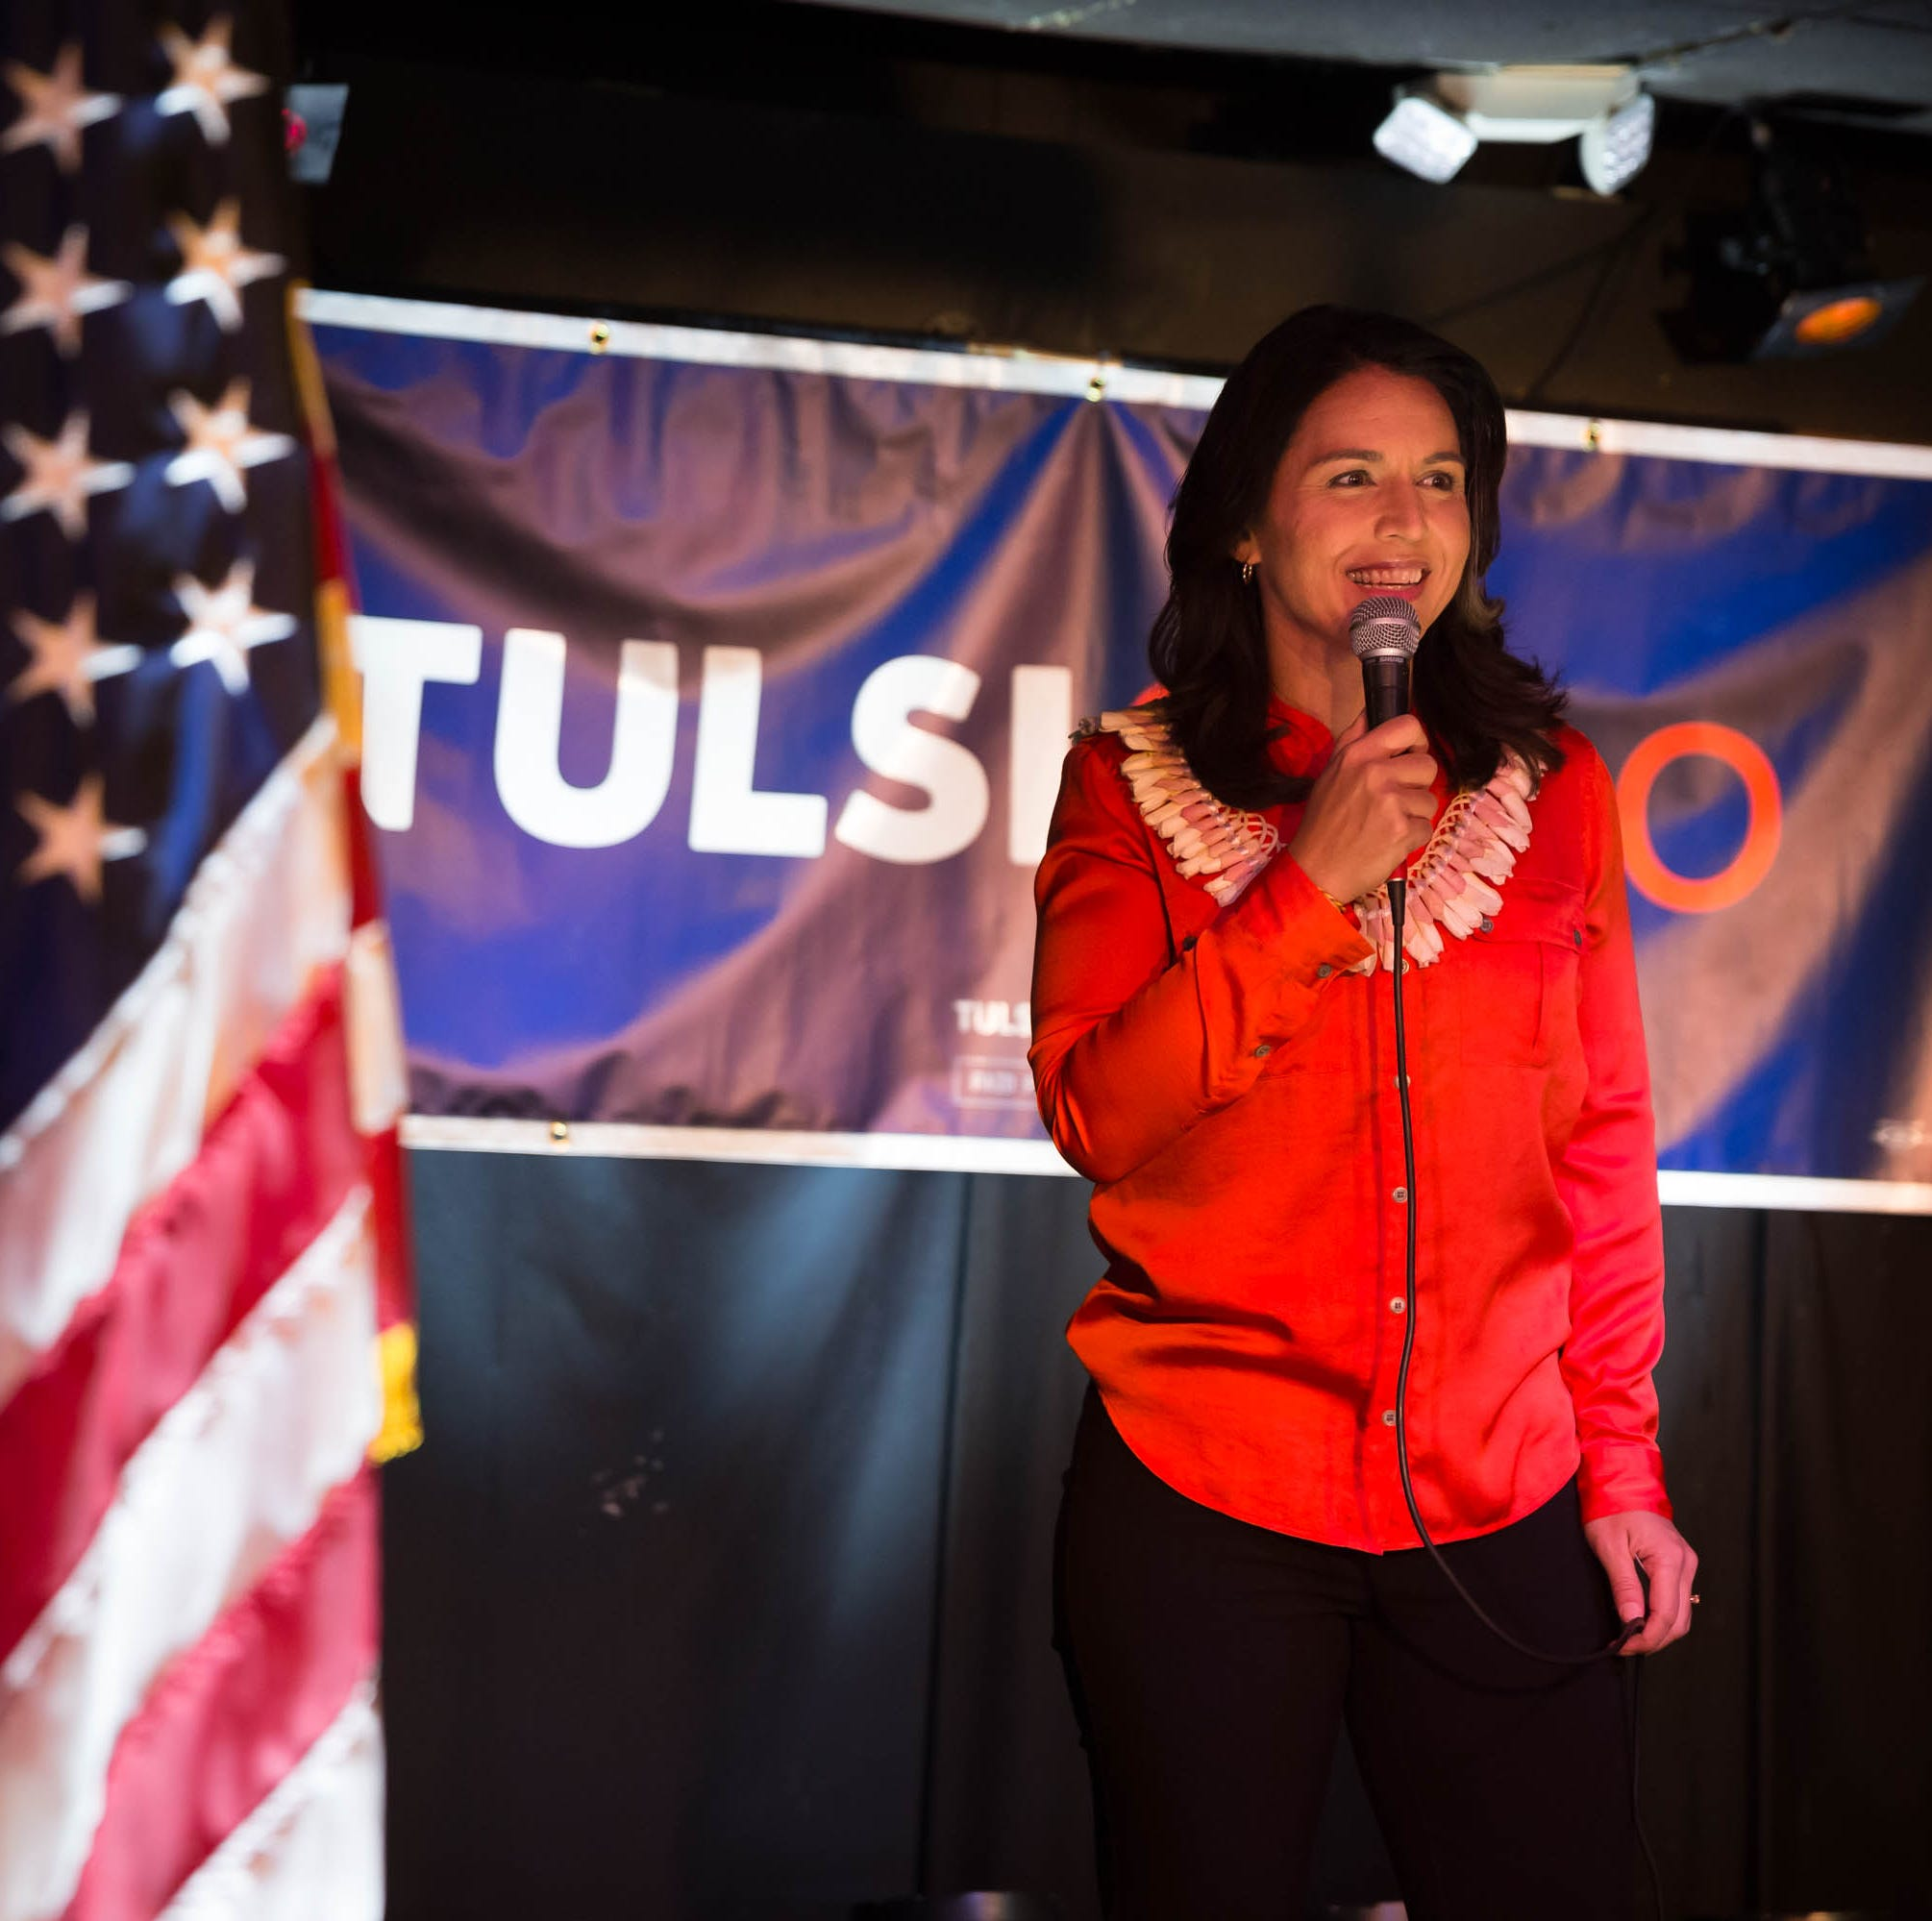 Tulsi Gabbard stumps on war and peace in Iowa City